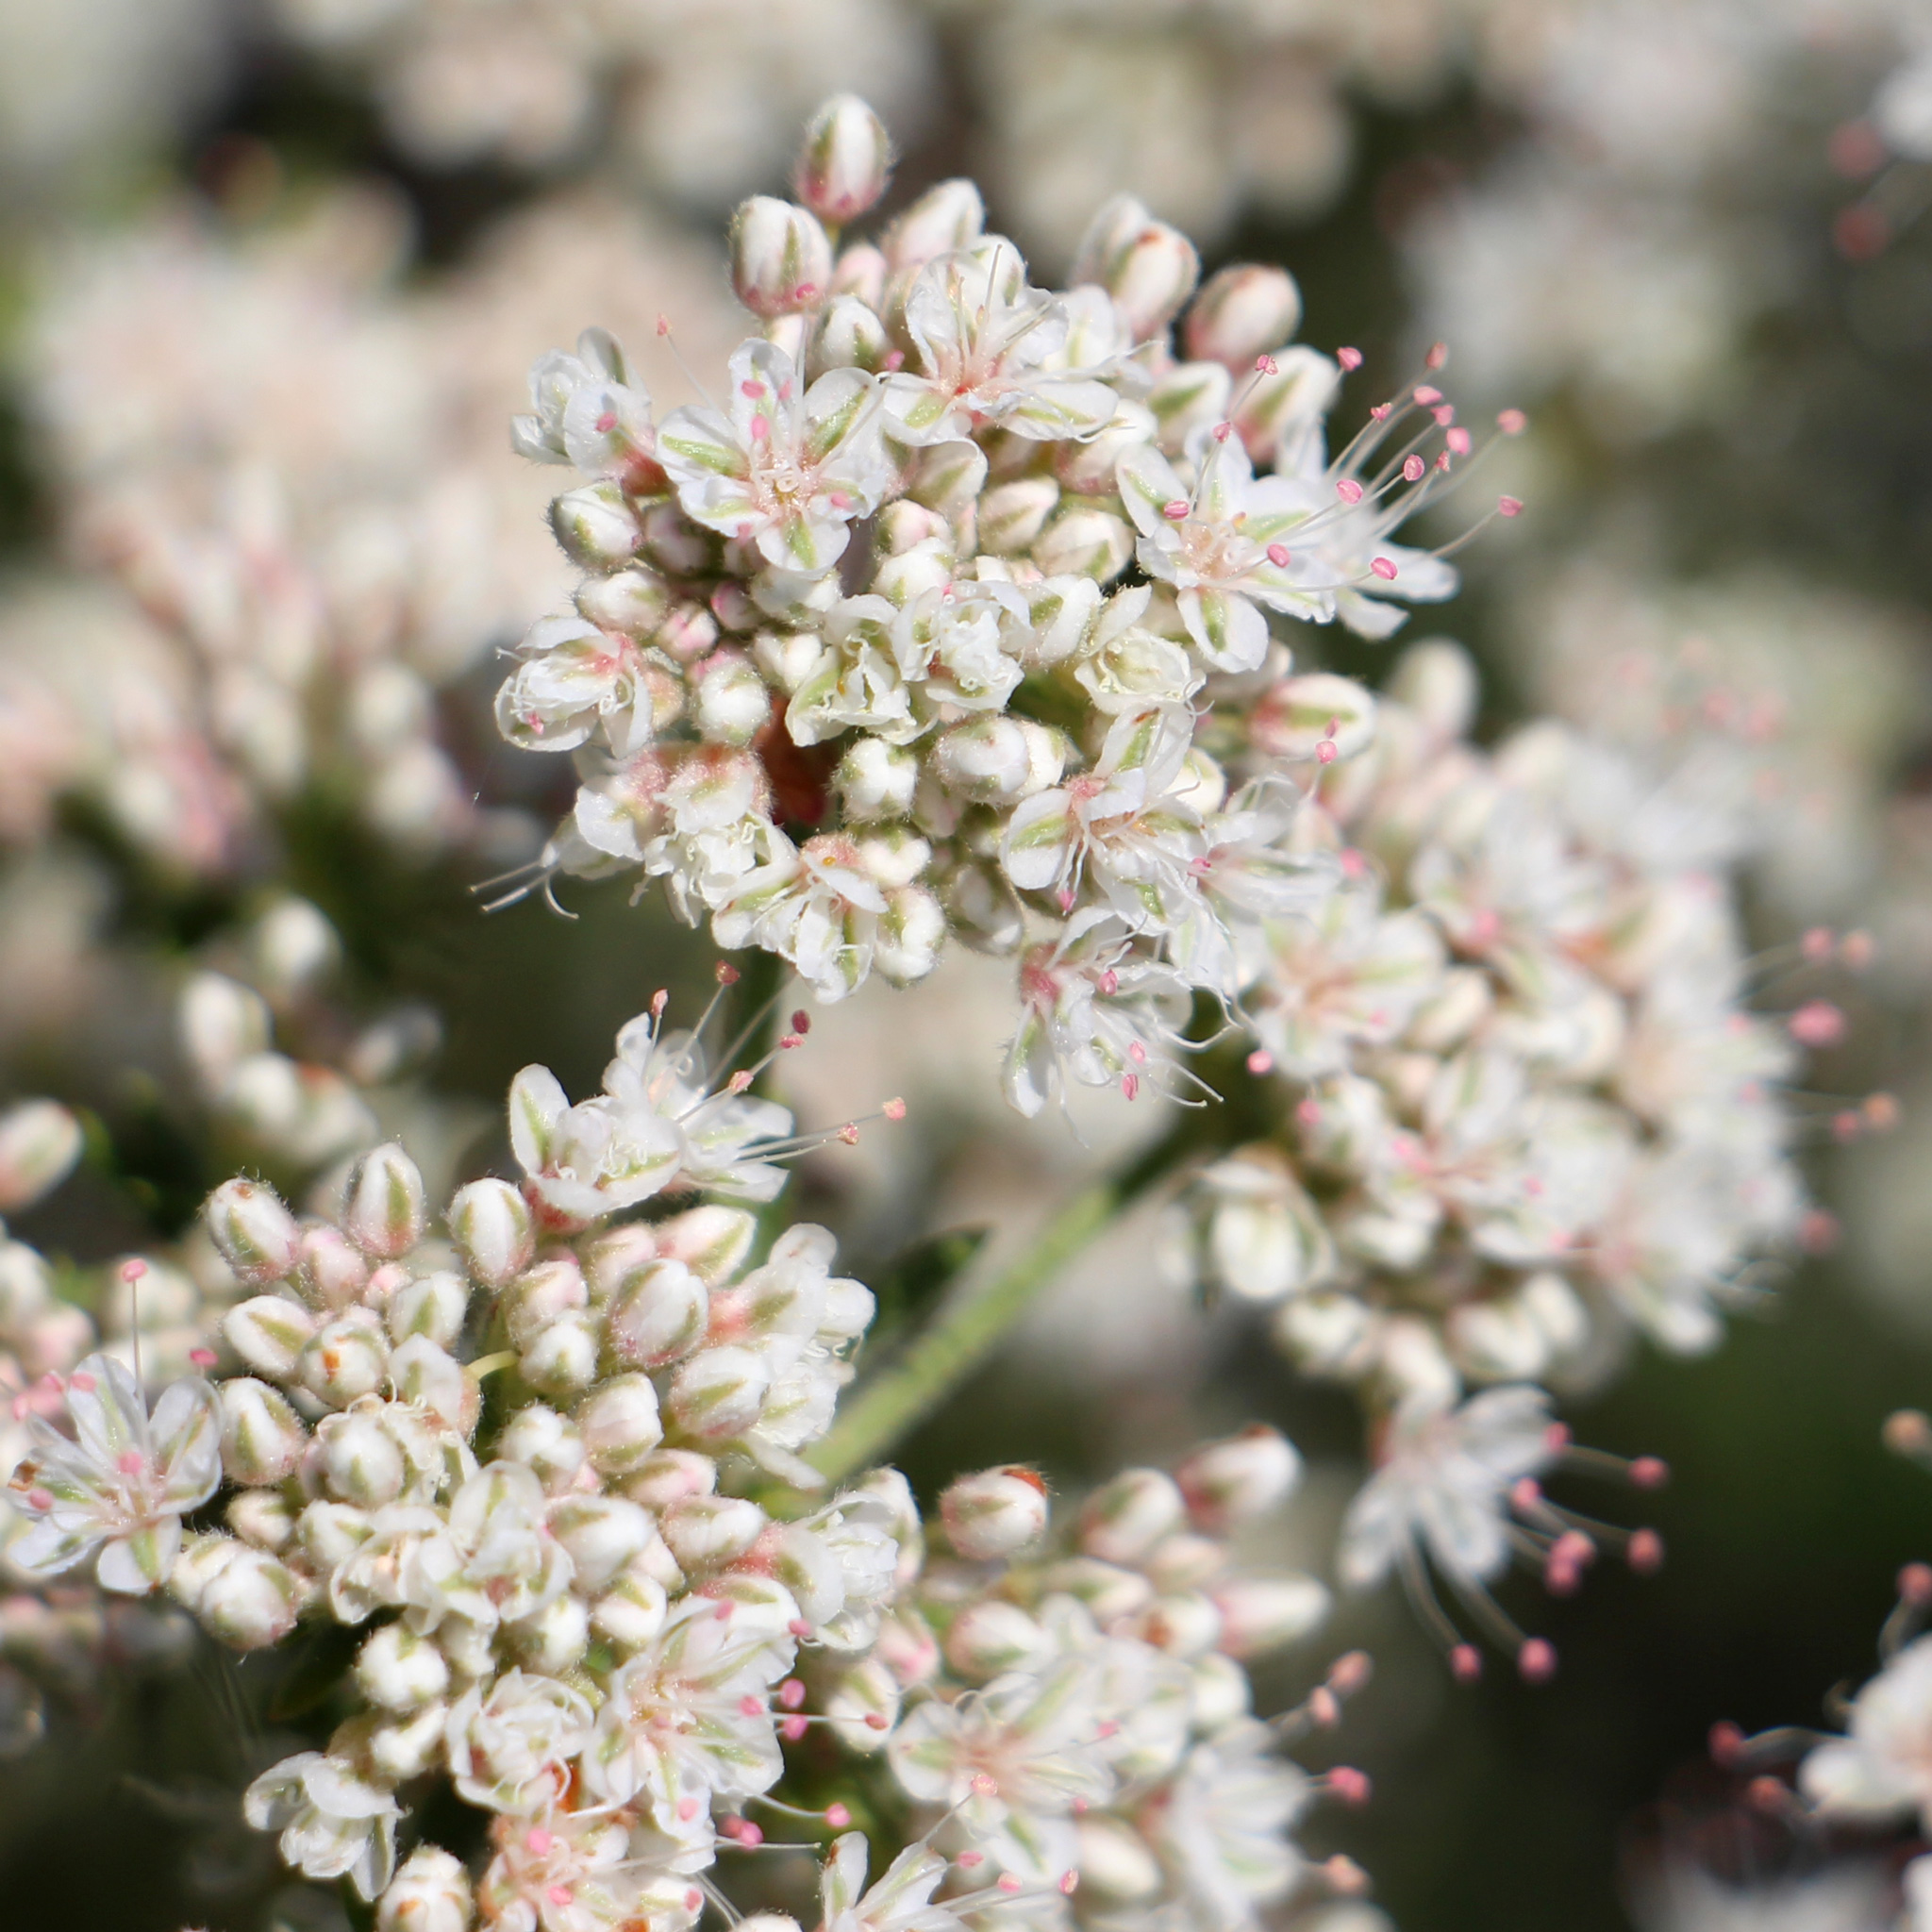 California Native Flowering Plants and Wildflowers - OVLC : OVLC